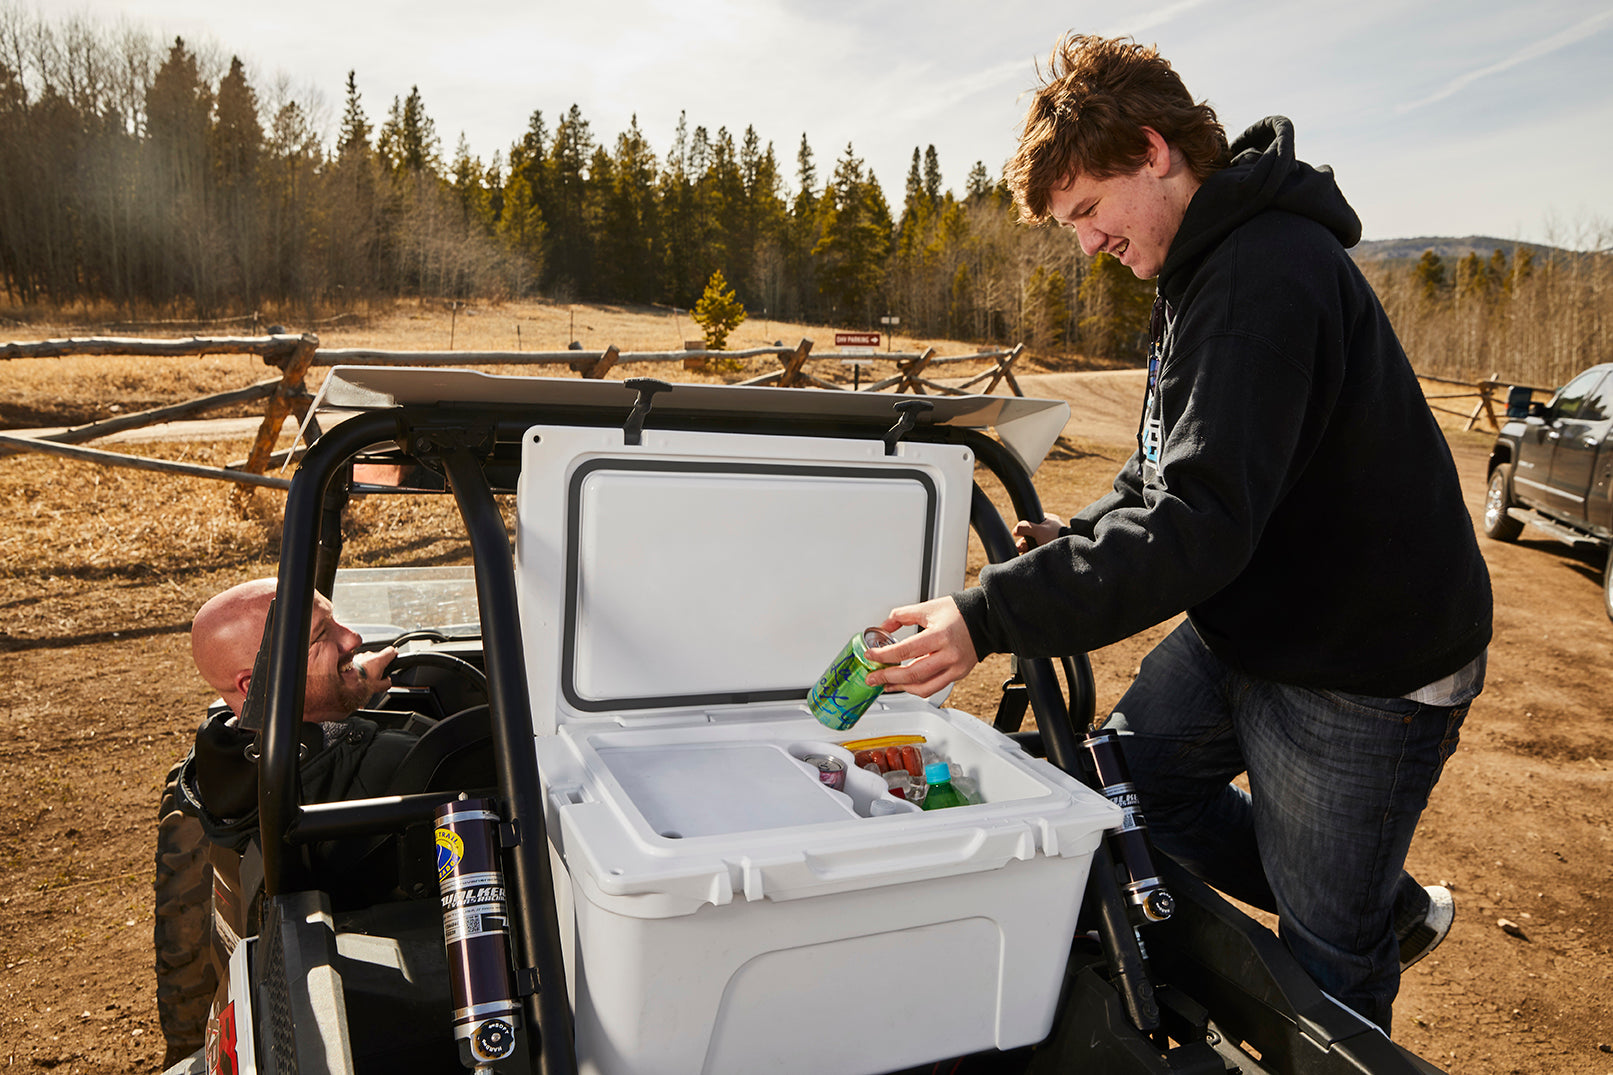 Founder Gene Perkins and son Caden pack a cooler on the back of an ATV